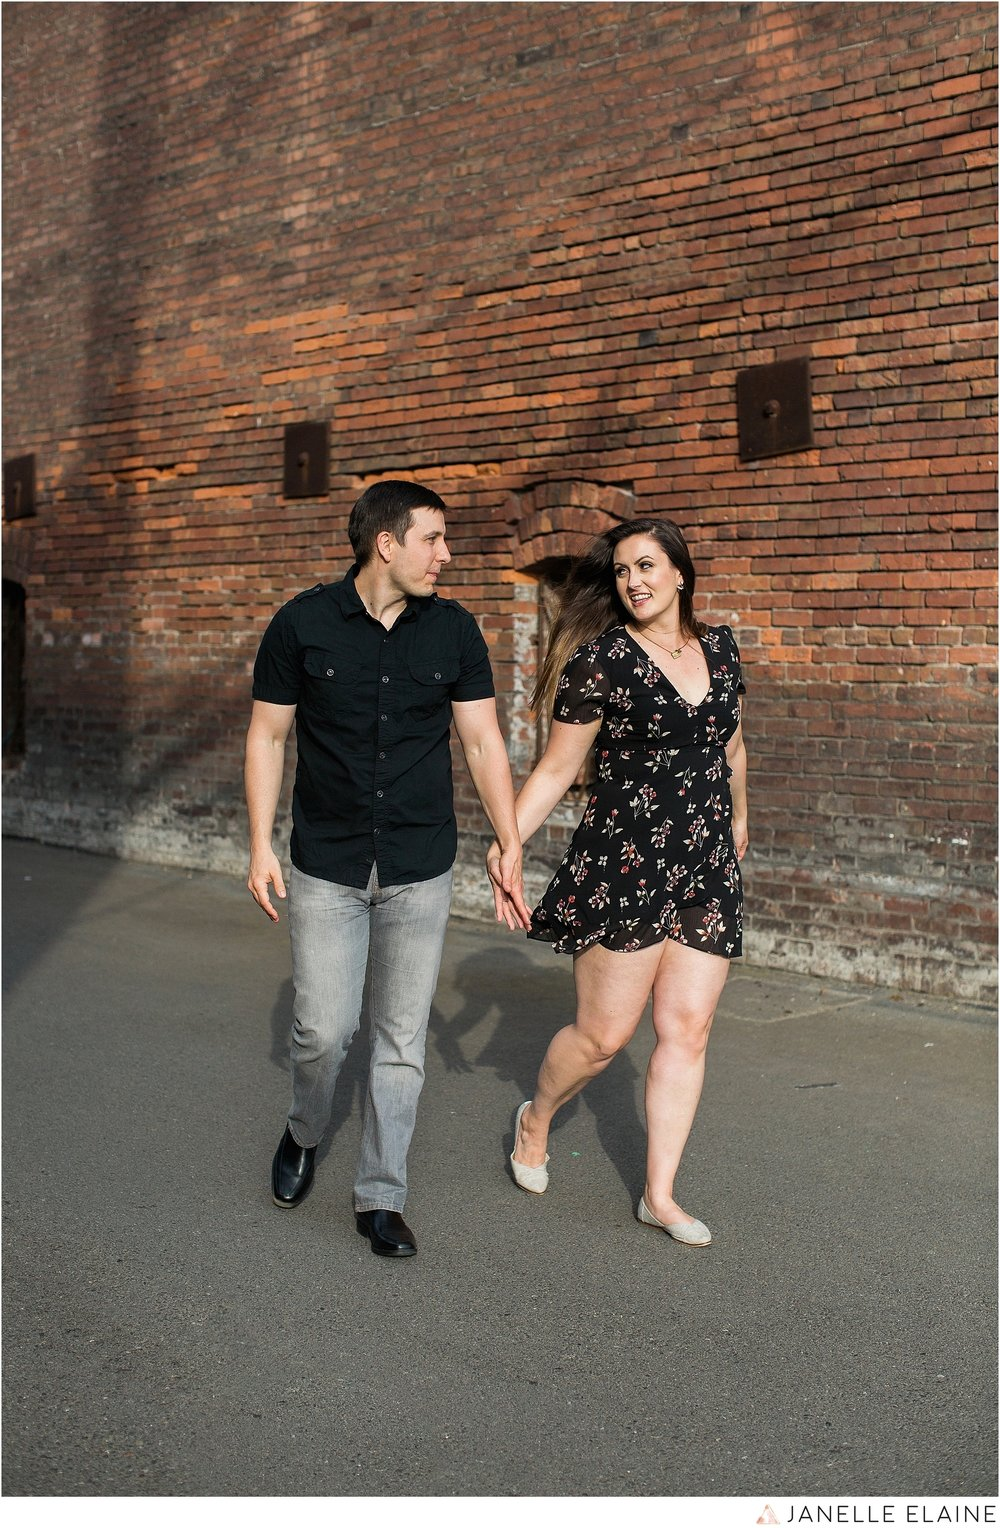 karen ethan-georgetown engagement photos-seattle-janelle elaine photography-134.jpg